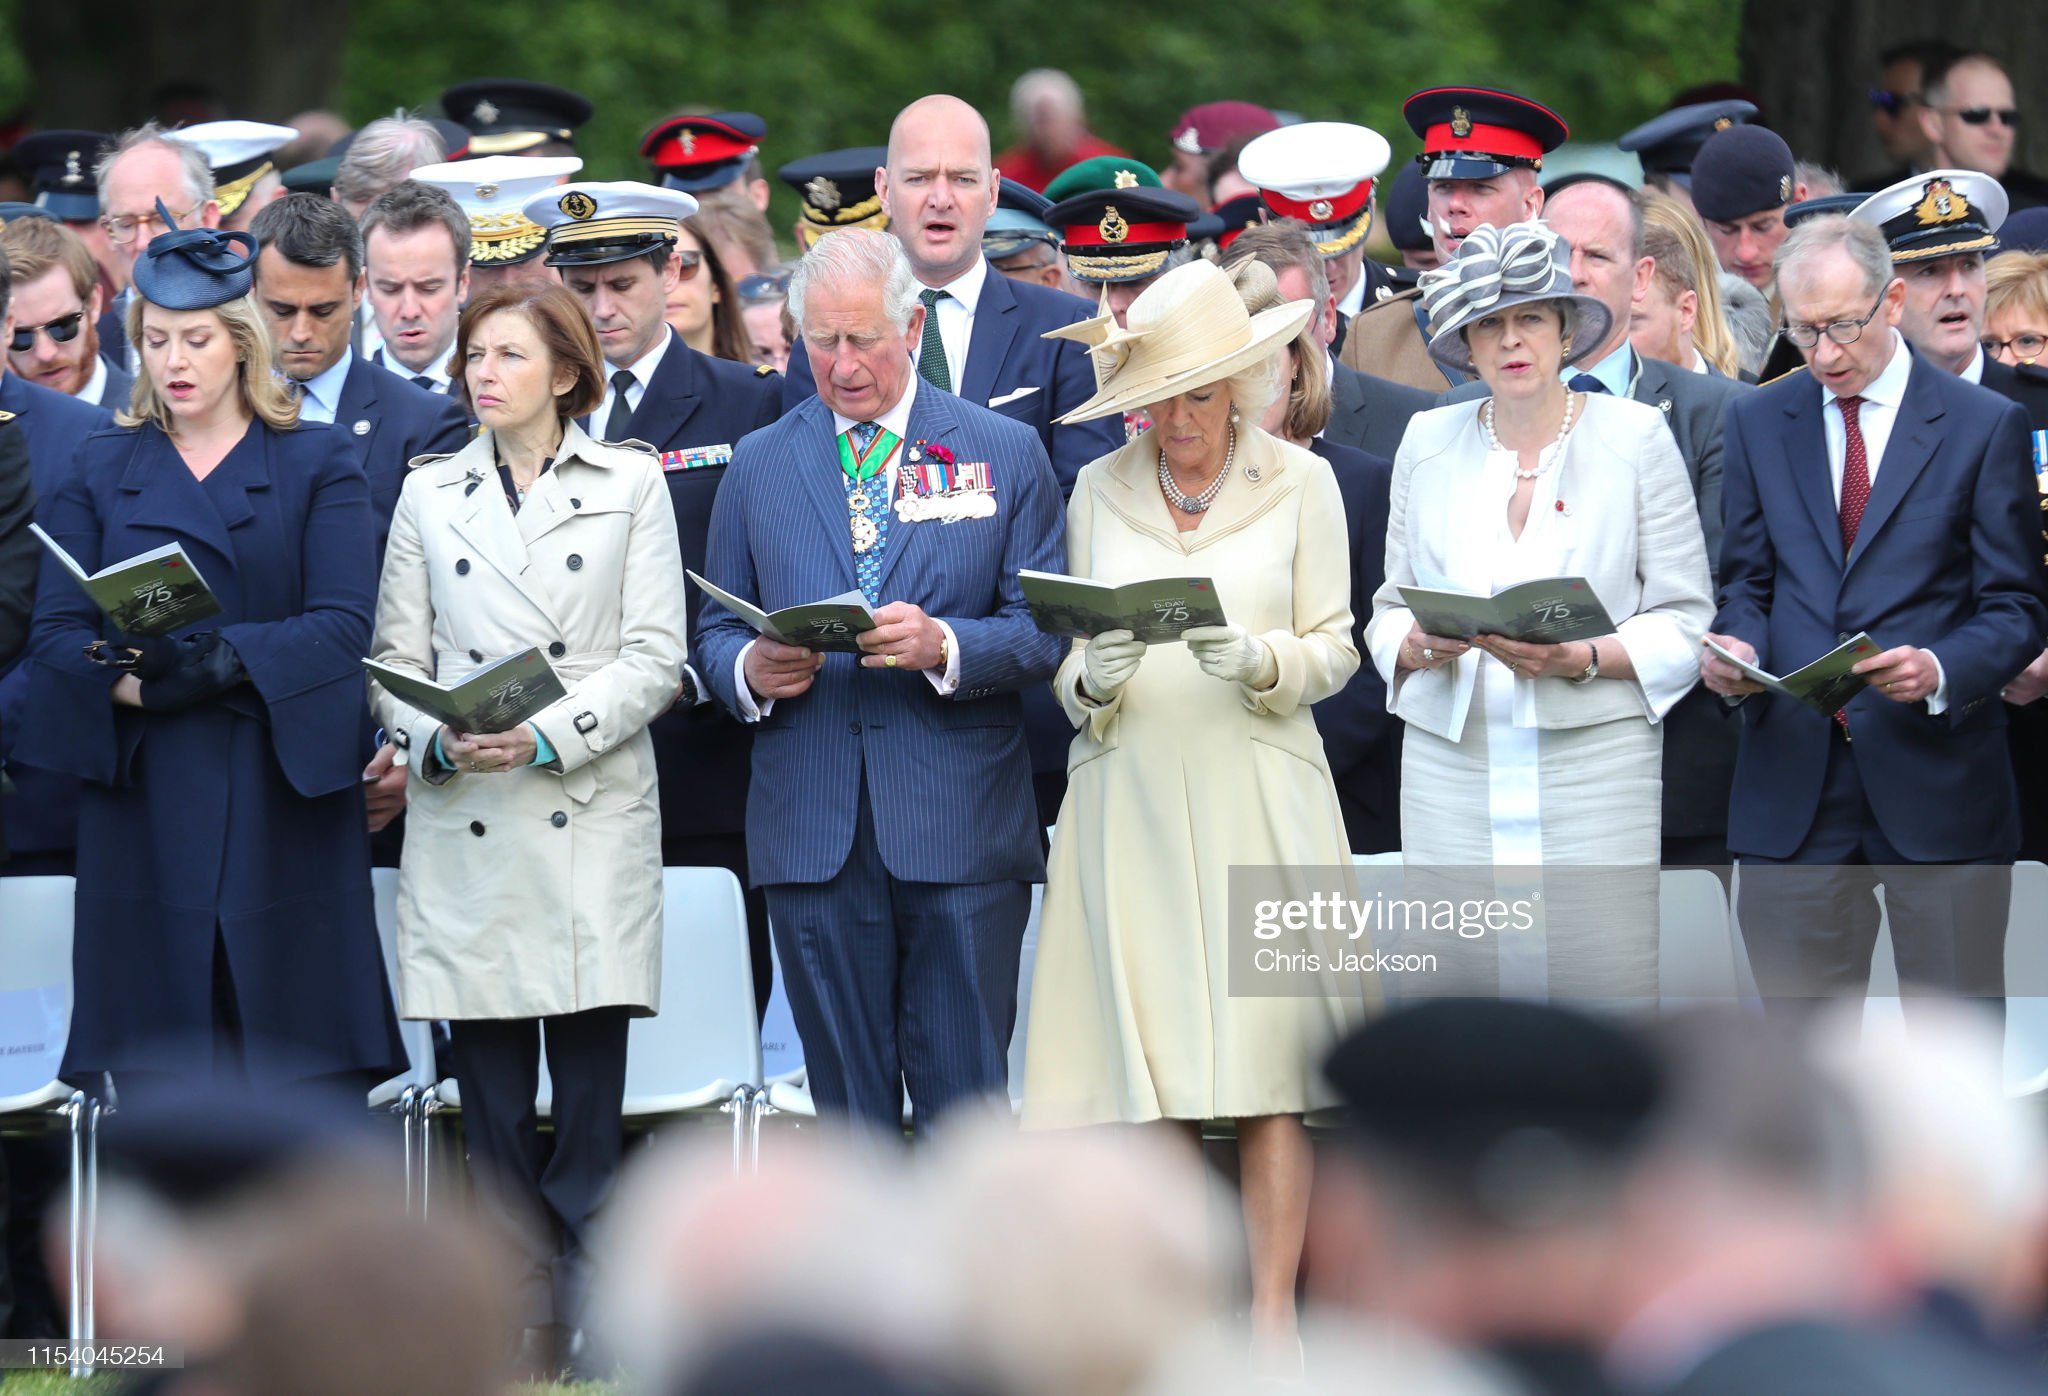 secretary-of-state-for-defence-penny-mourdaunt-prince-charles-prince-picture-id1154045254